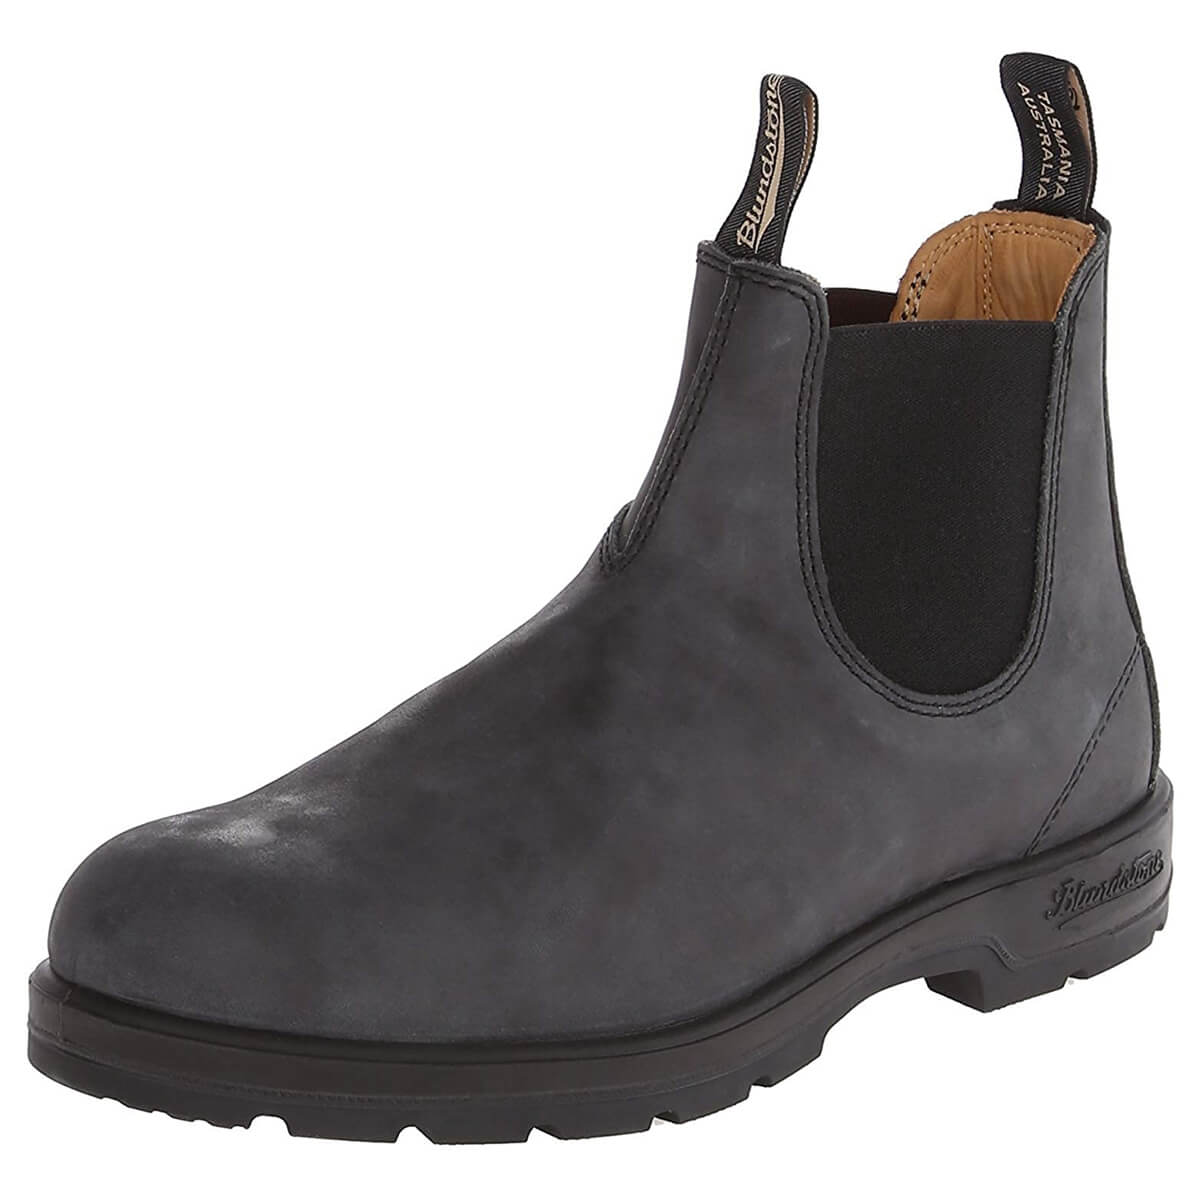 Blundstone Round Toe Chelsea Boot for Men